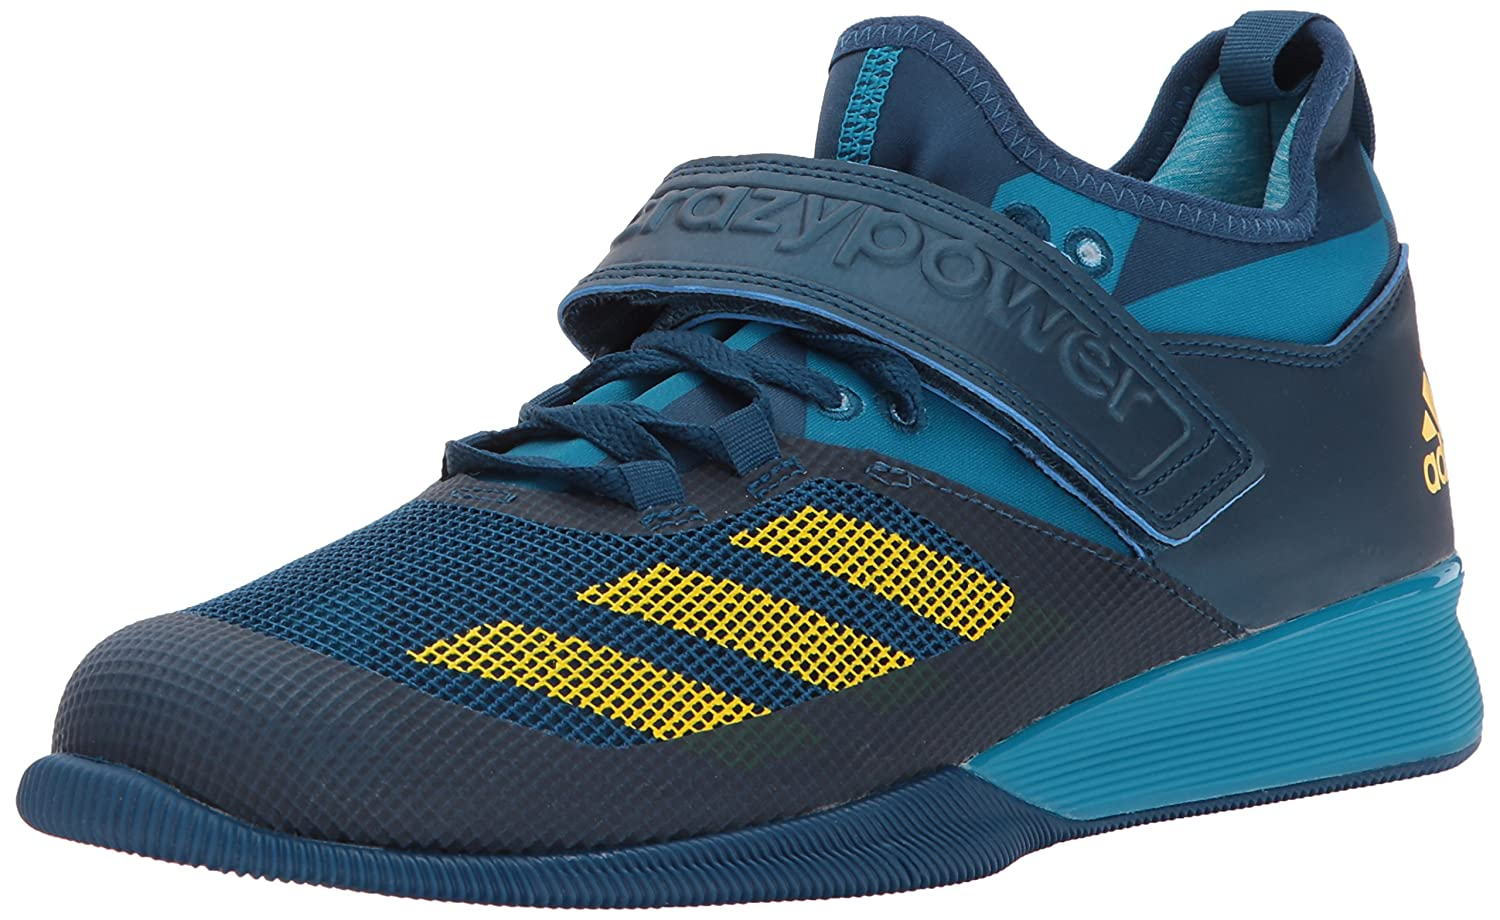 Bleu Night Equipment jaune Mystery Petrol adidas Perforhommece - Crazy Power Homme 47 EU